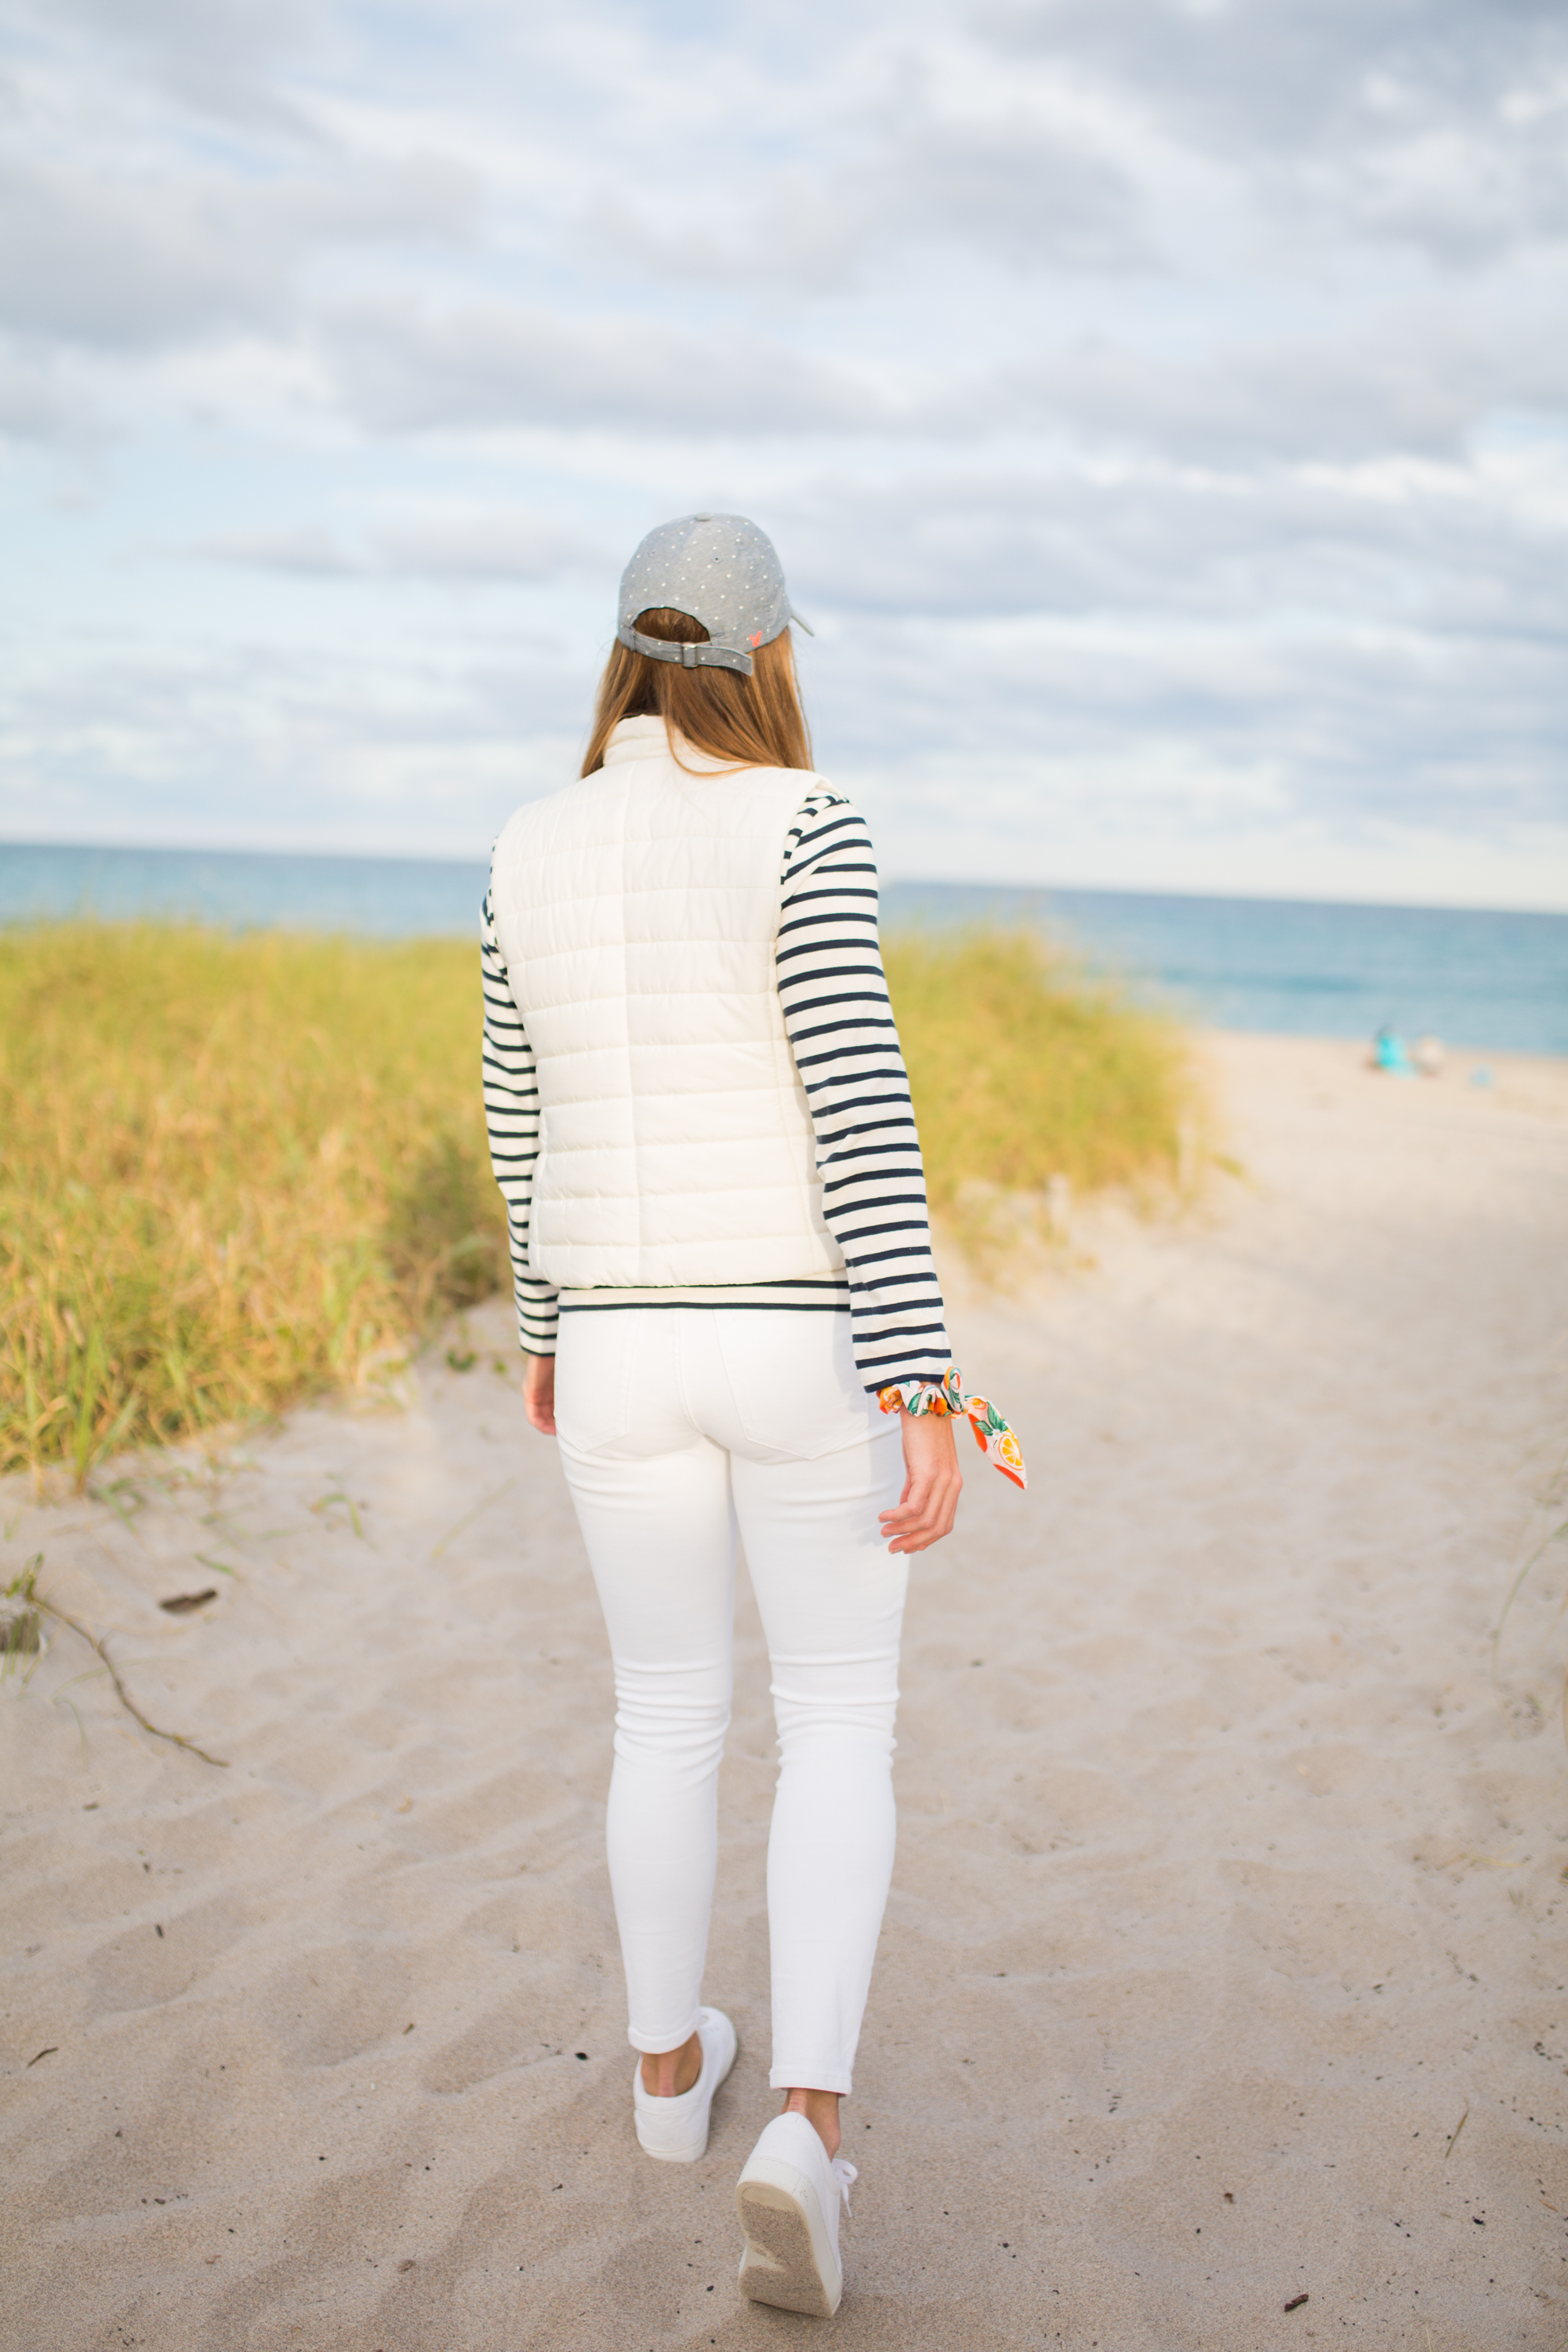 Saint James Breton Striped Shirt / American Style / Classic Style / How to Wear a Striped Top / White Jeans / Beach Style / Beach Outfit - Sunshine Style, A Florida Based Fashion Blog by Katie